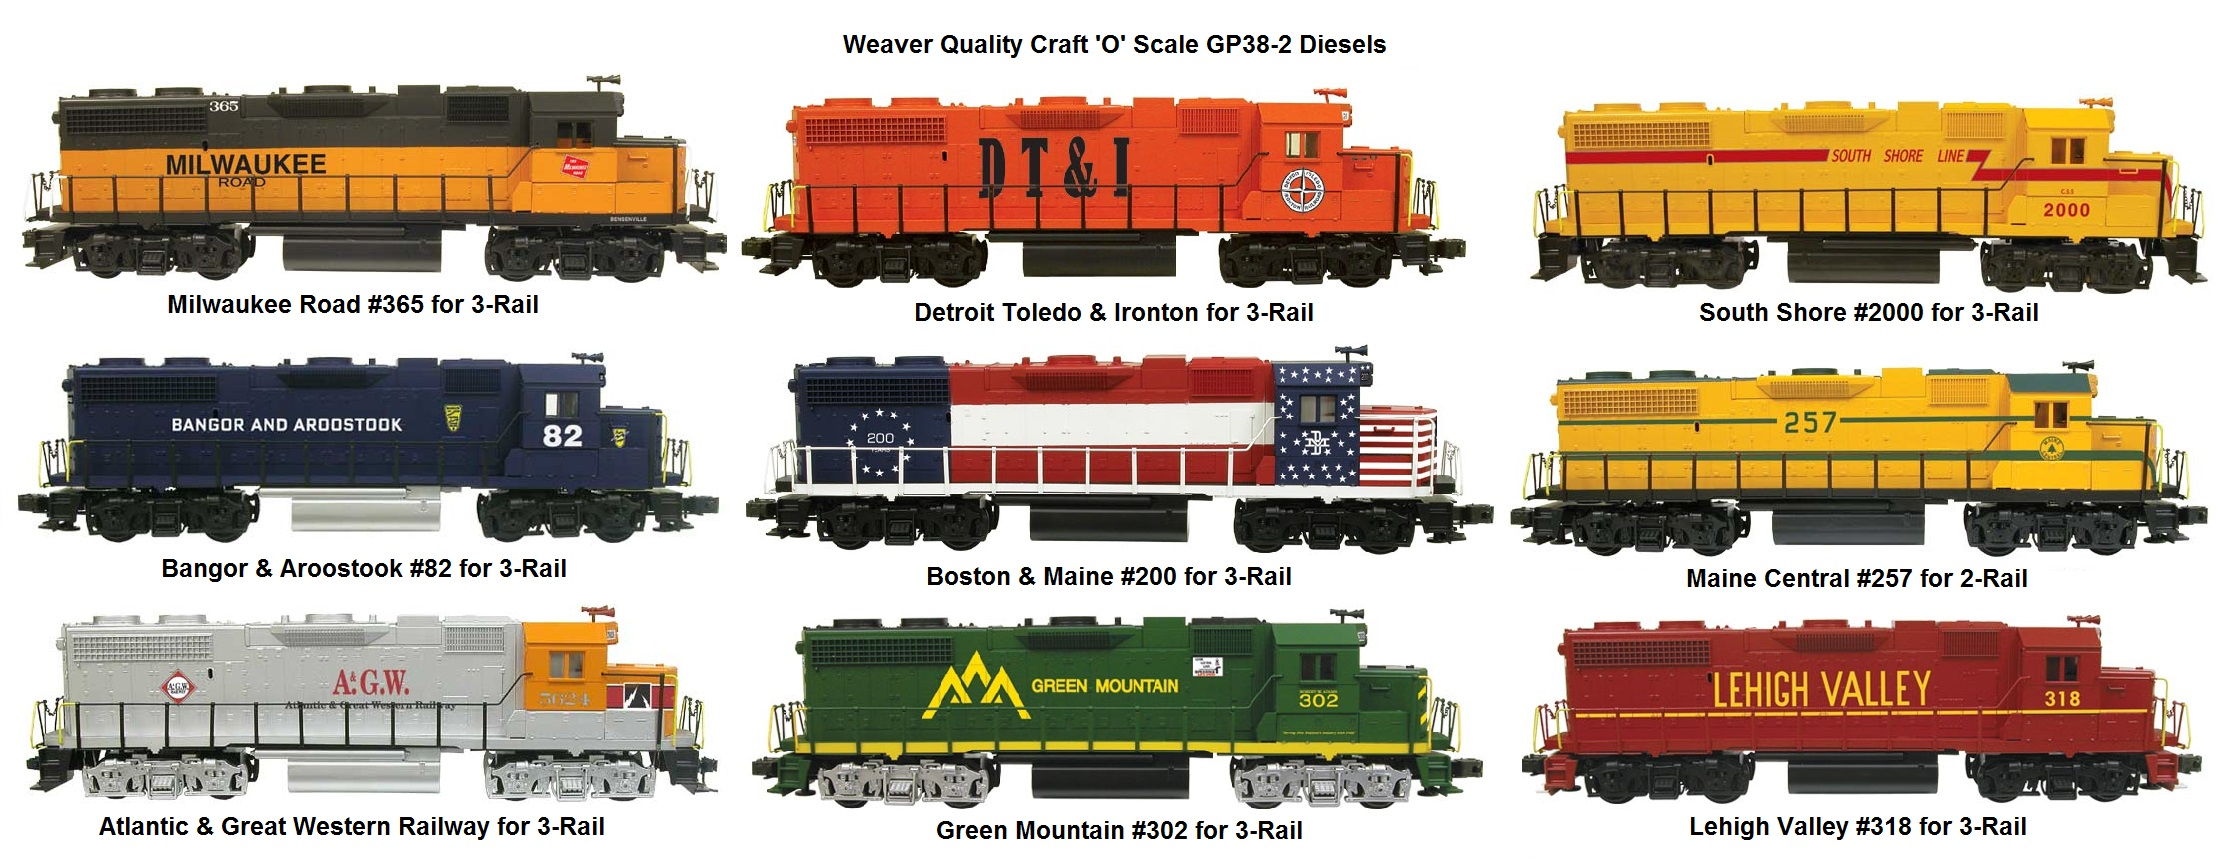 Weaver 'O' scale 2 and 3-rail GP-38-2 Diesel Locomotives